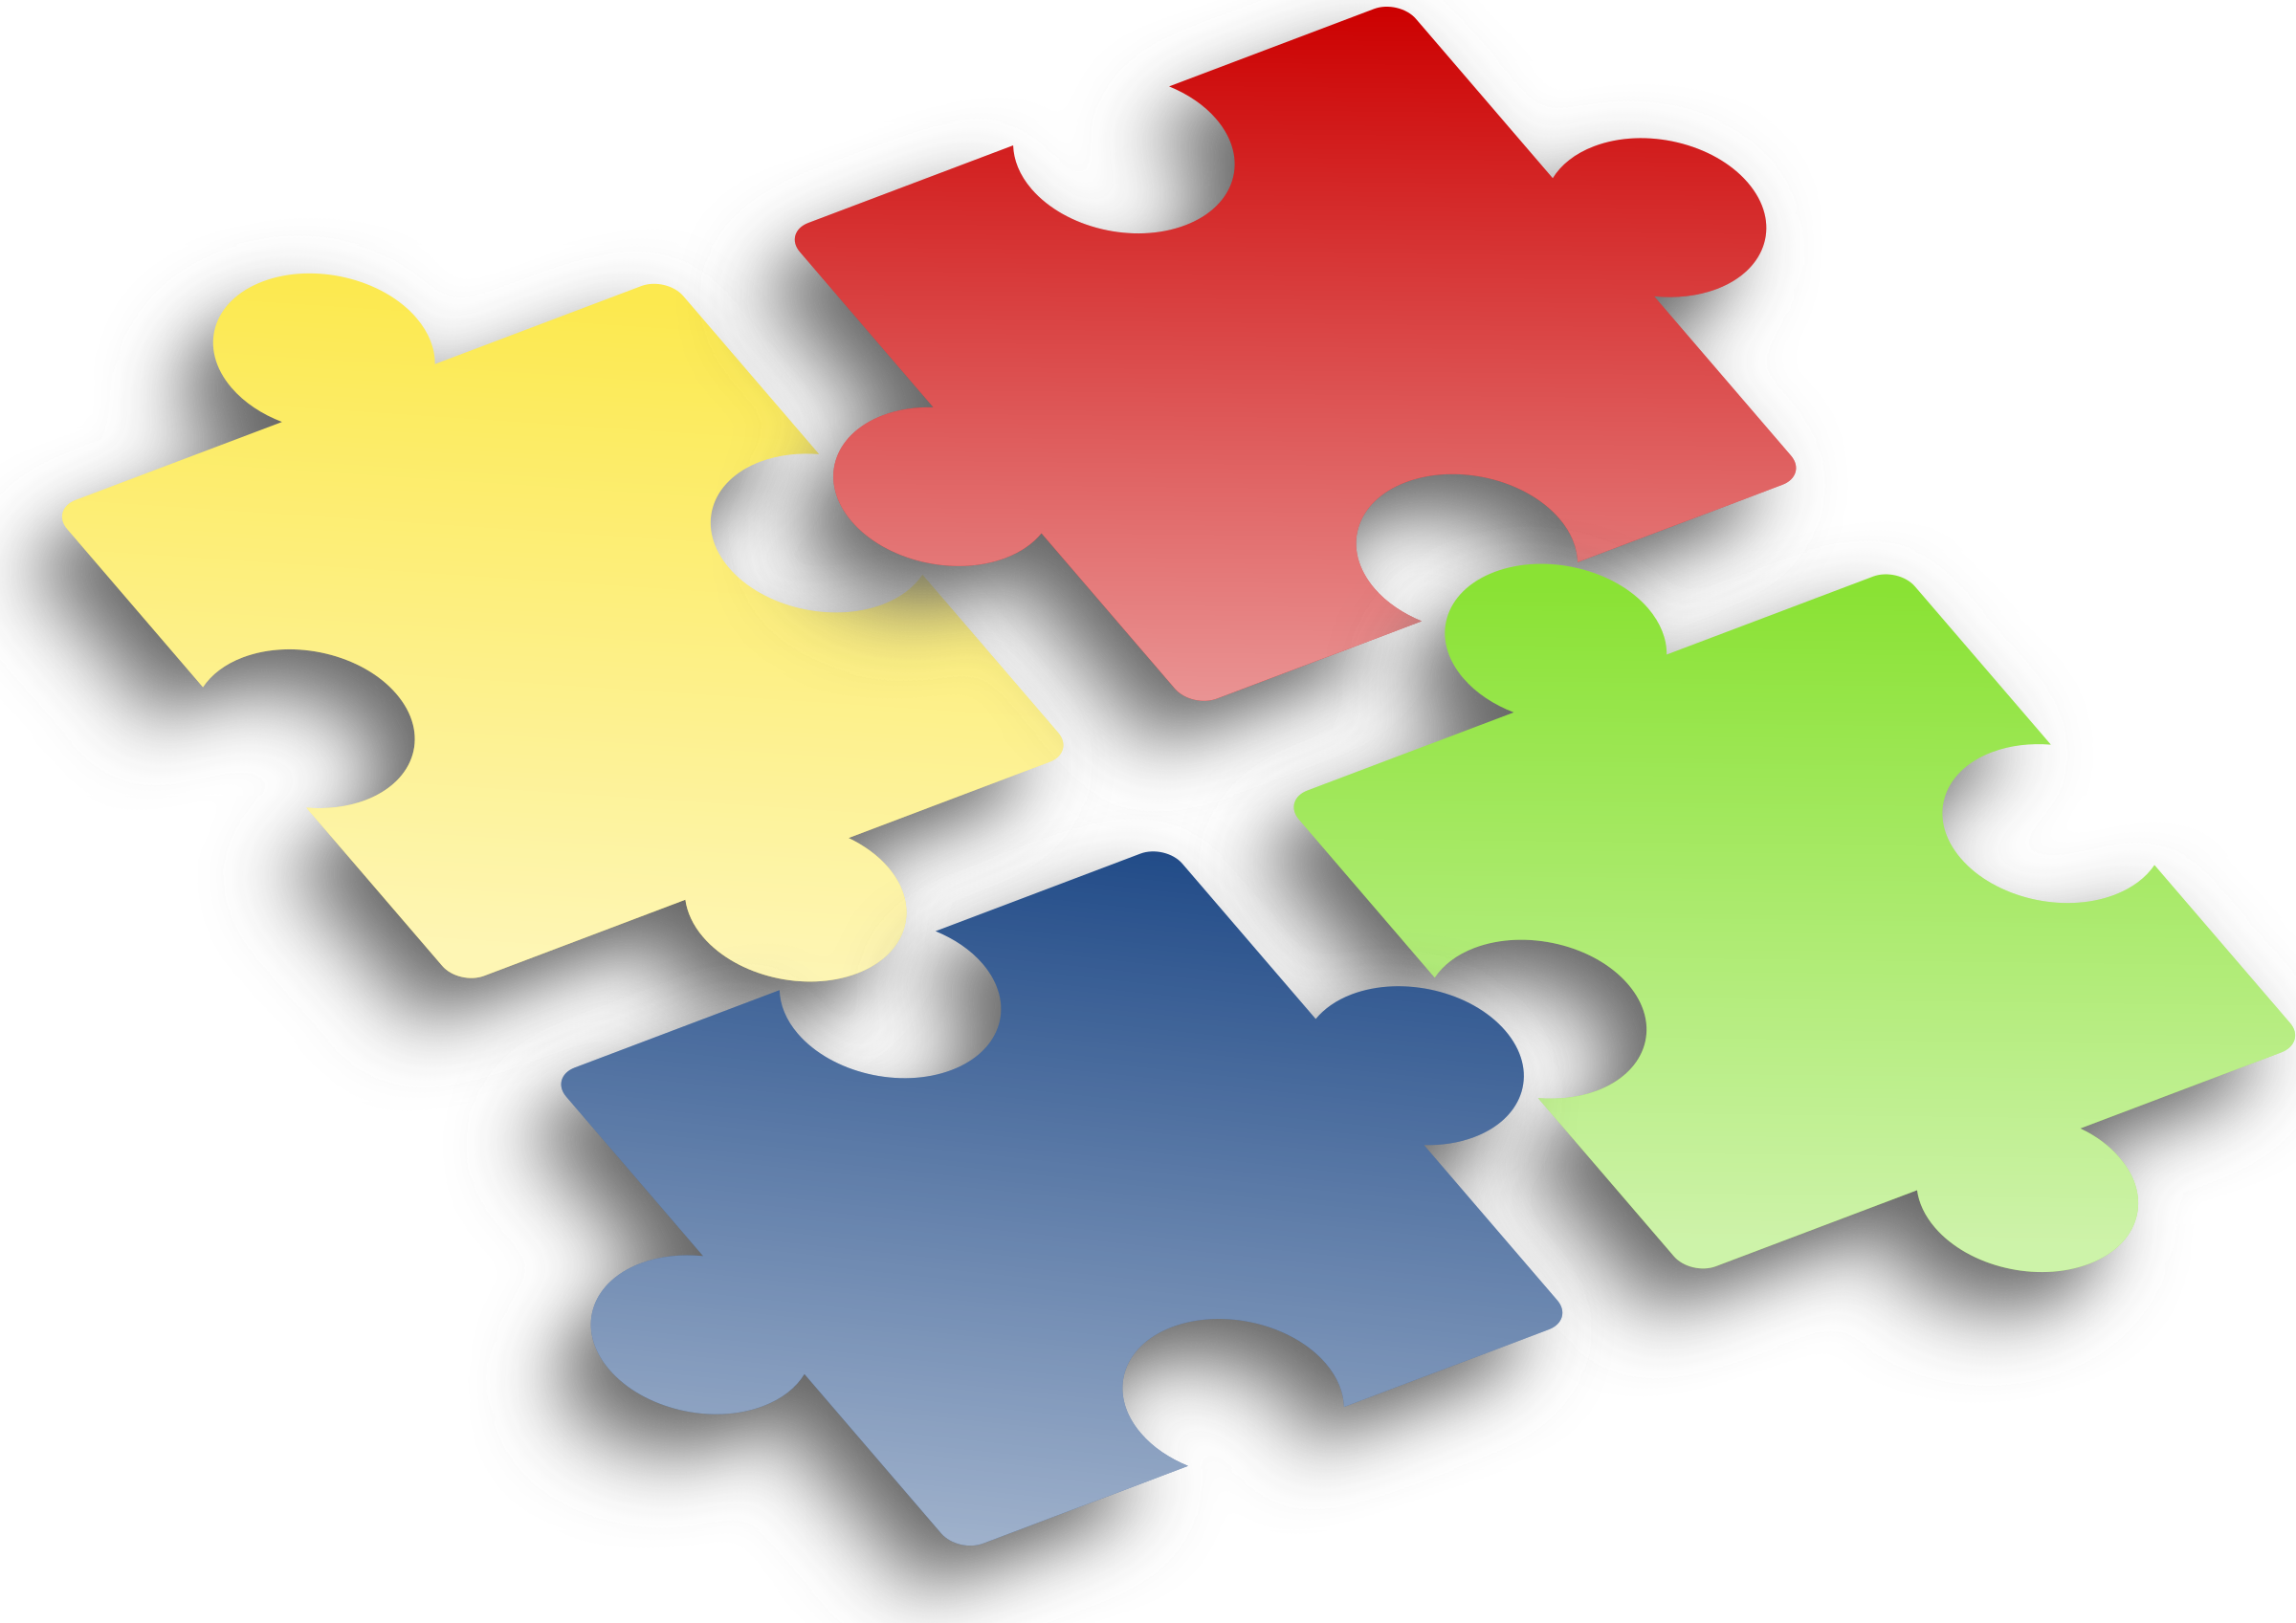 Puzzle clipart coordination. Jigsaw x making the